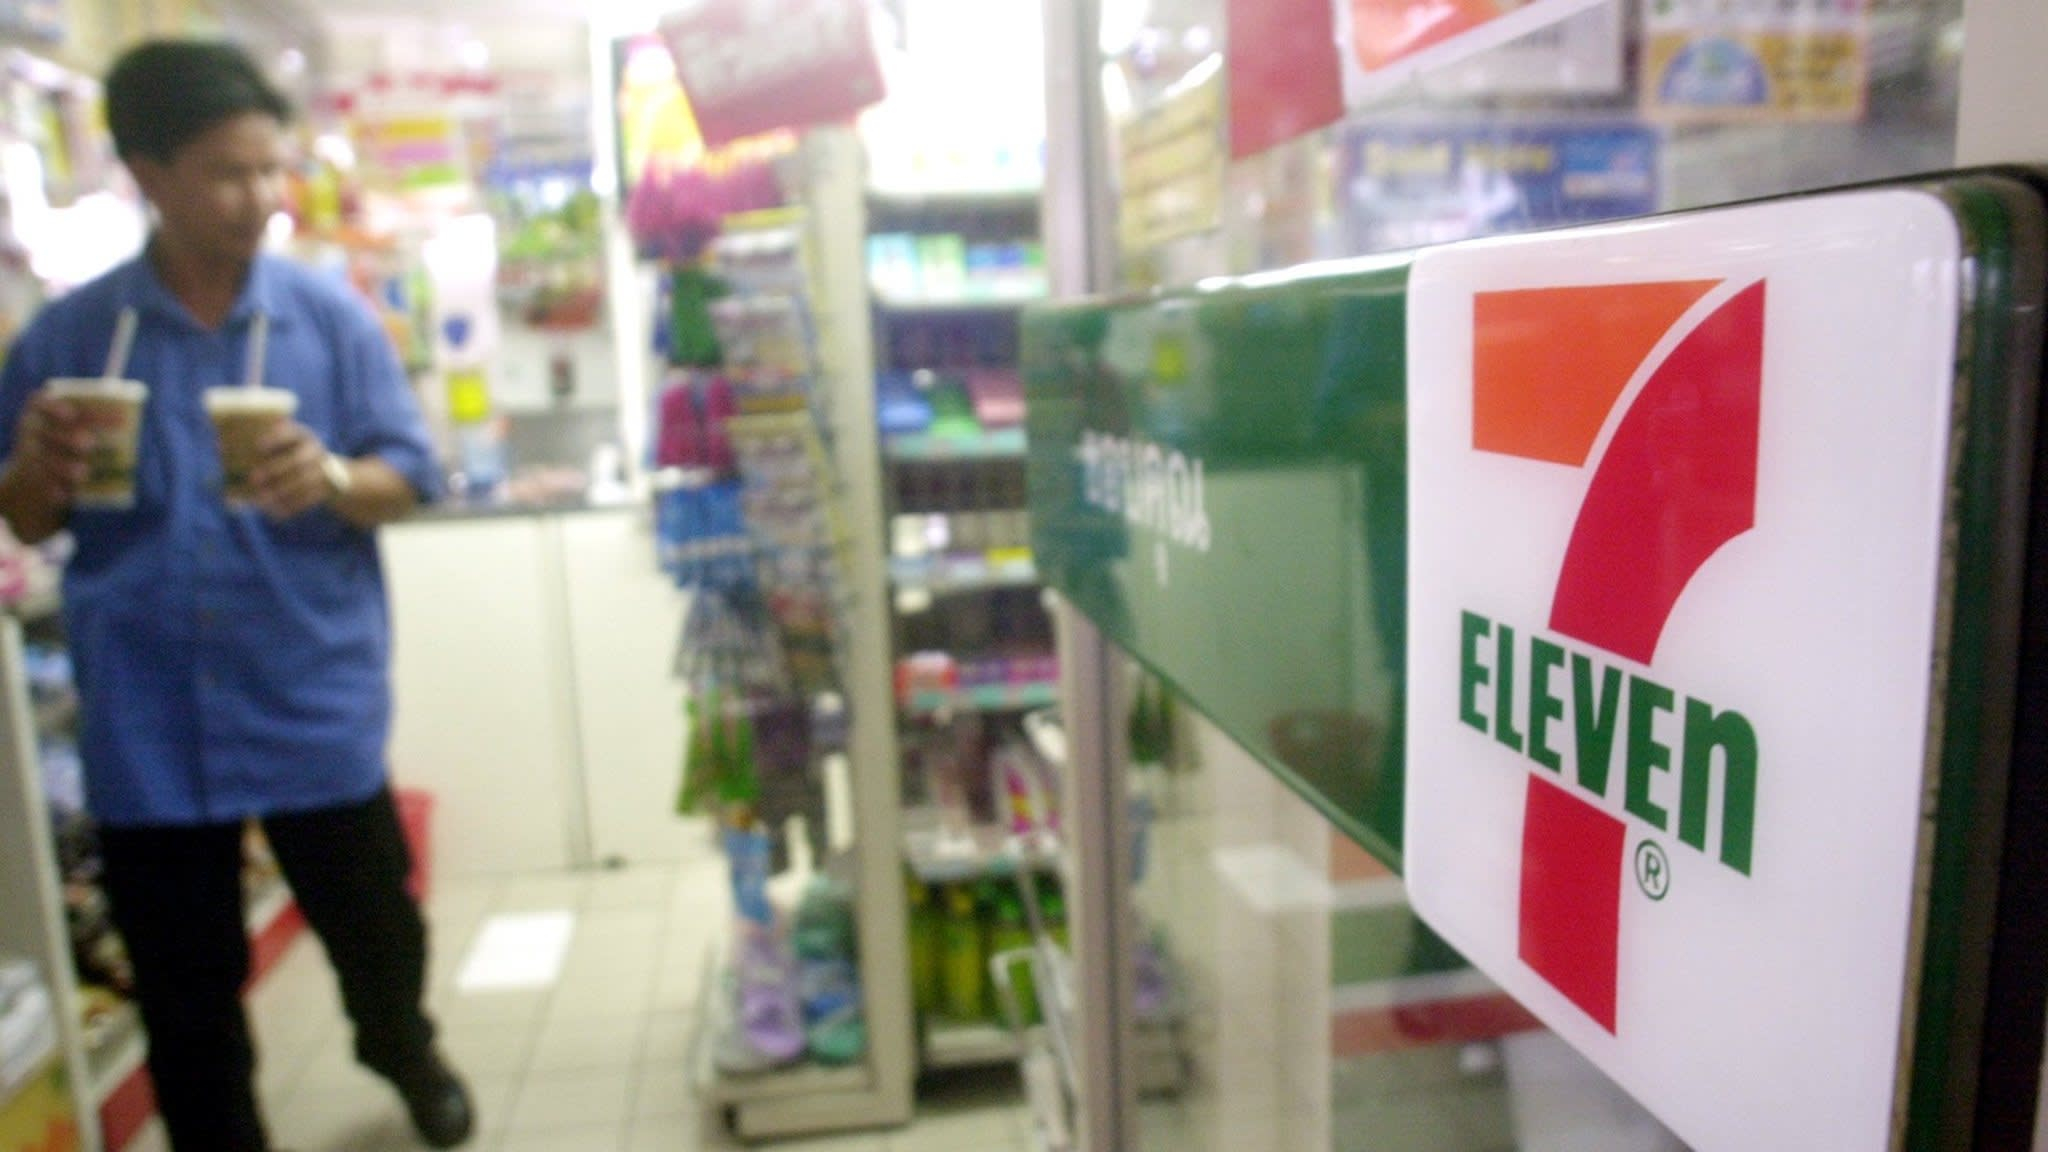 Thai 7-Eleven stores to adopt facial recognition technology | Financial Times